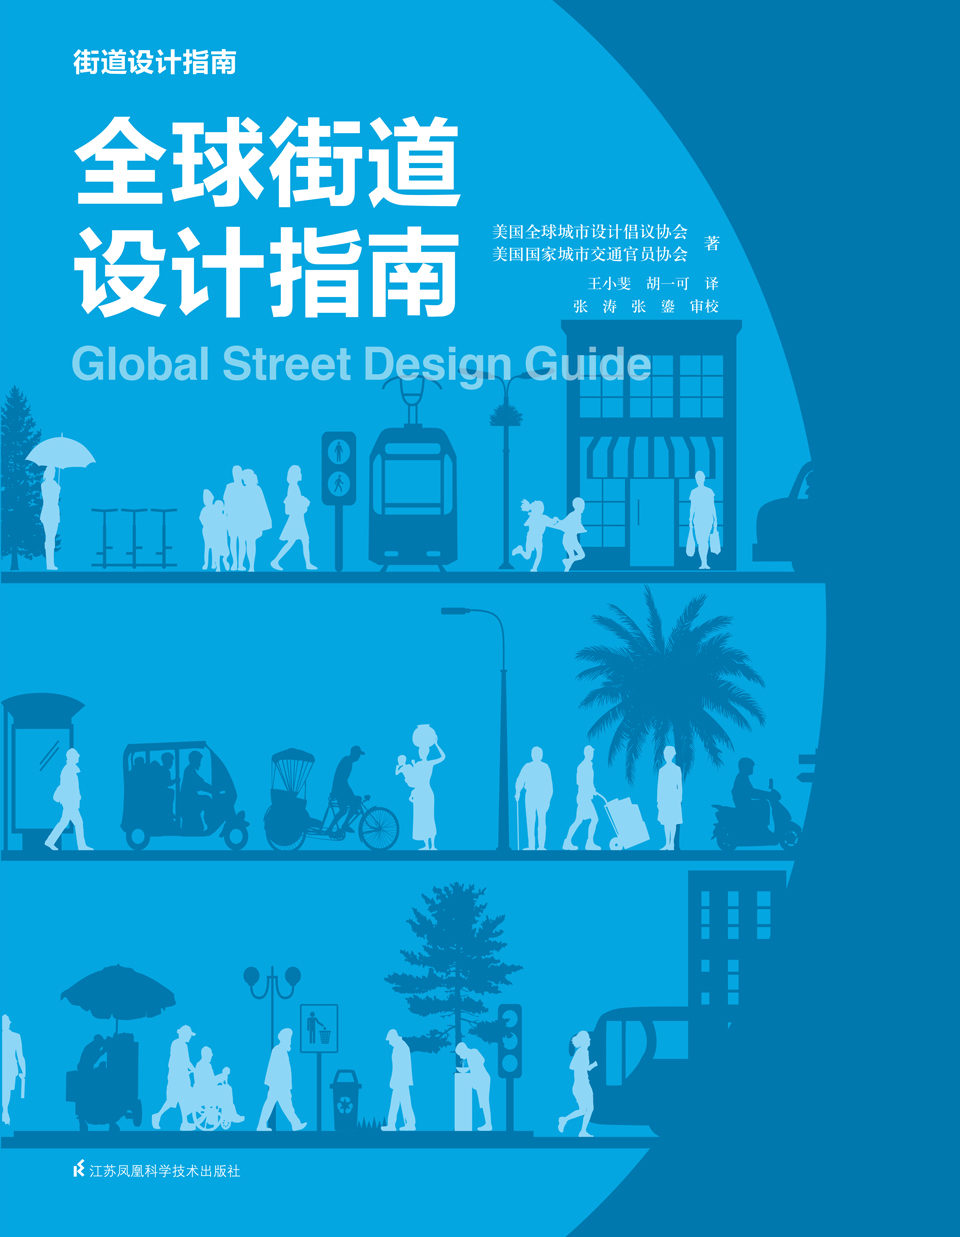 Global Streets Design Guide - Chinese Index